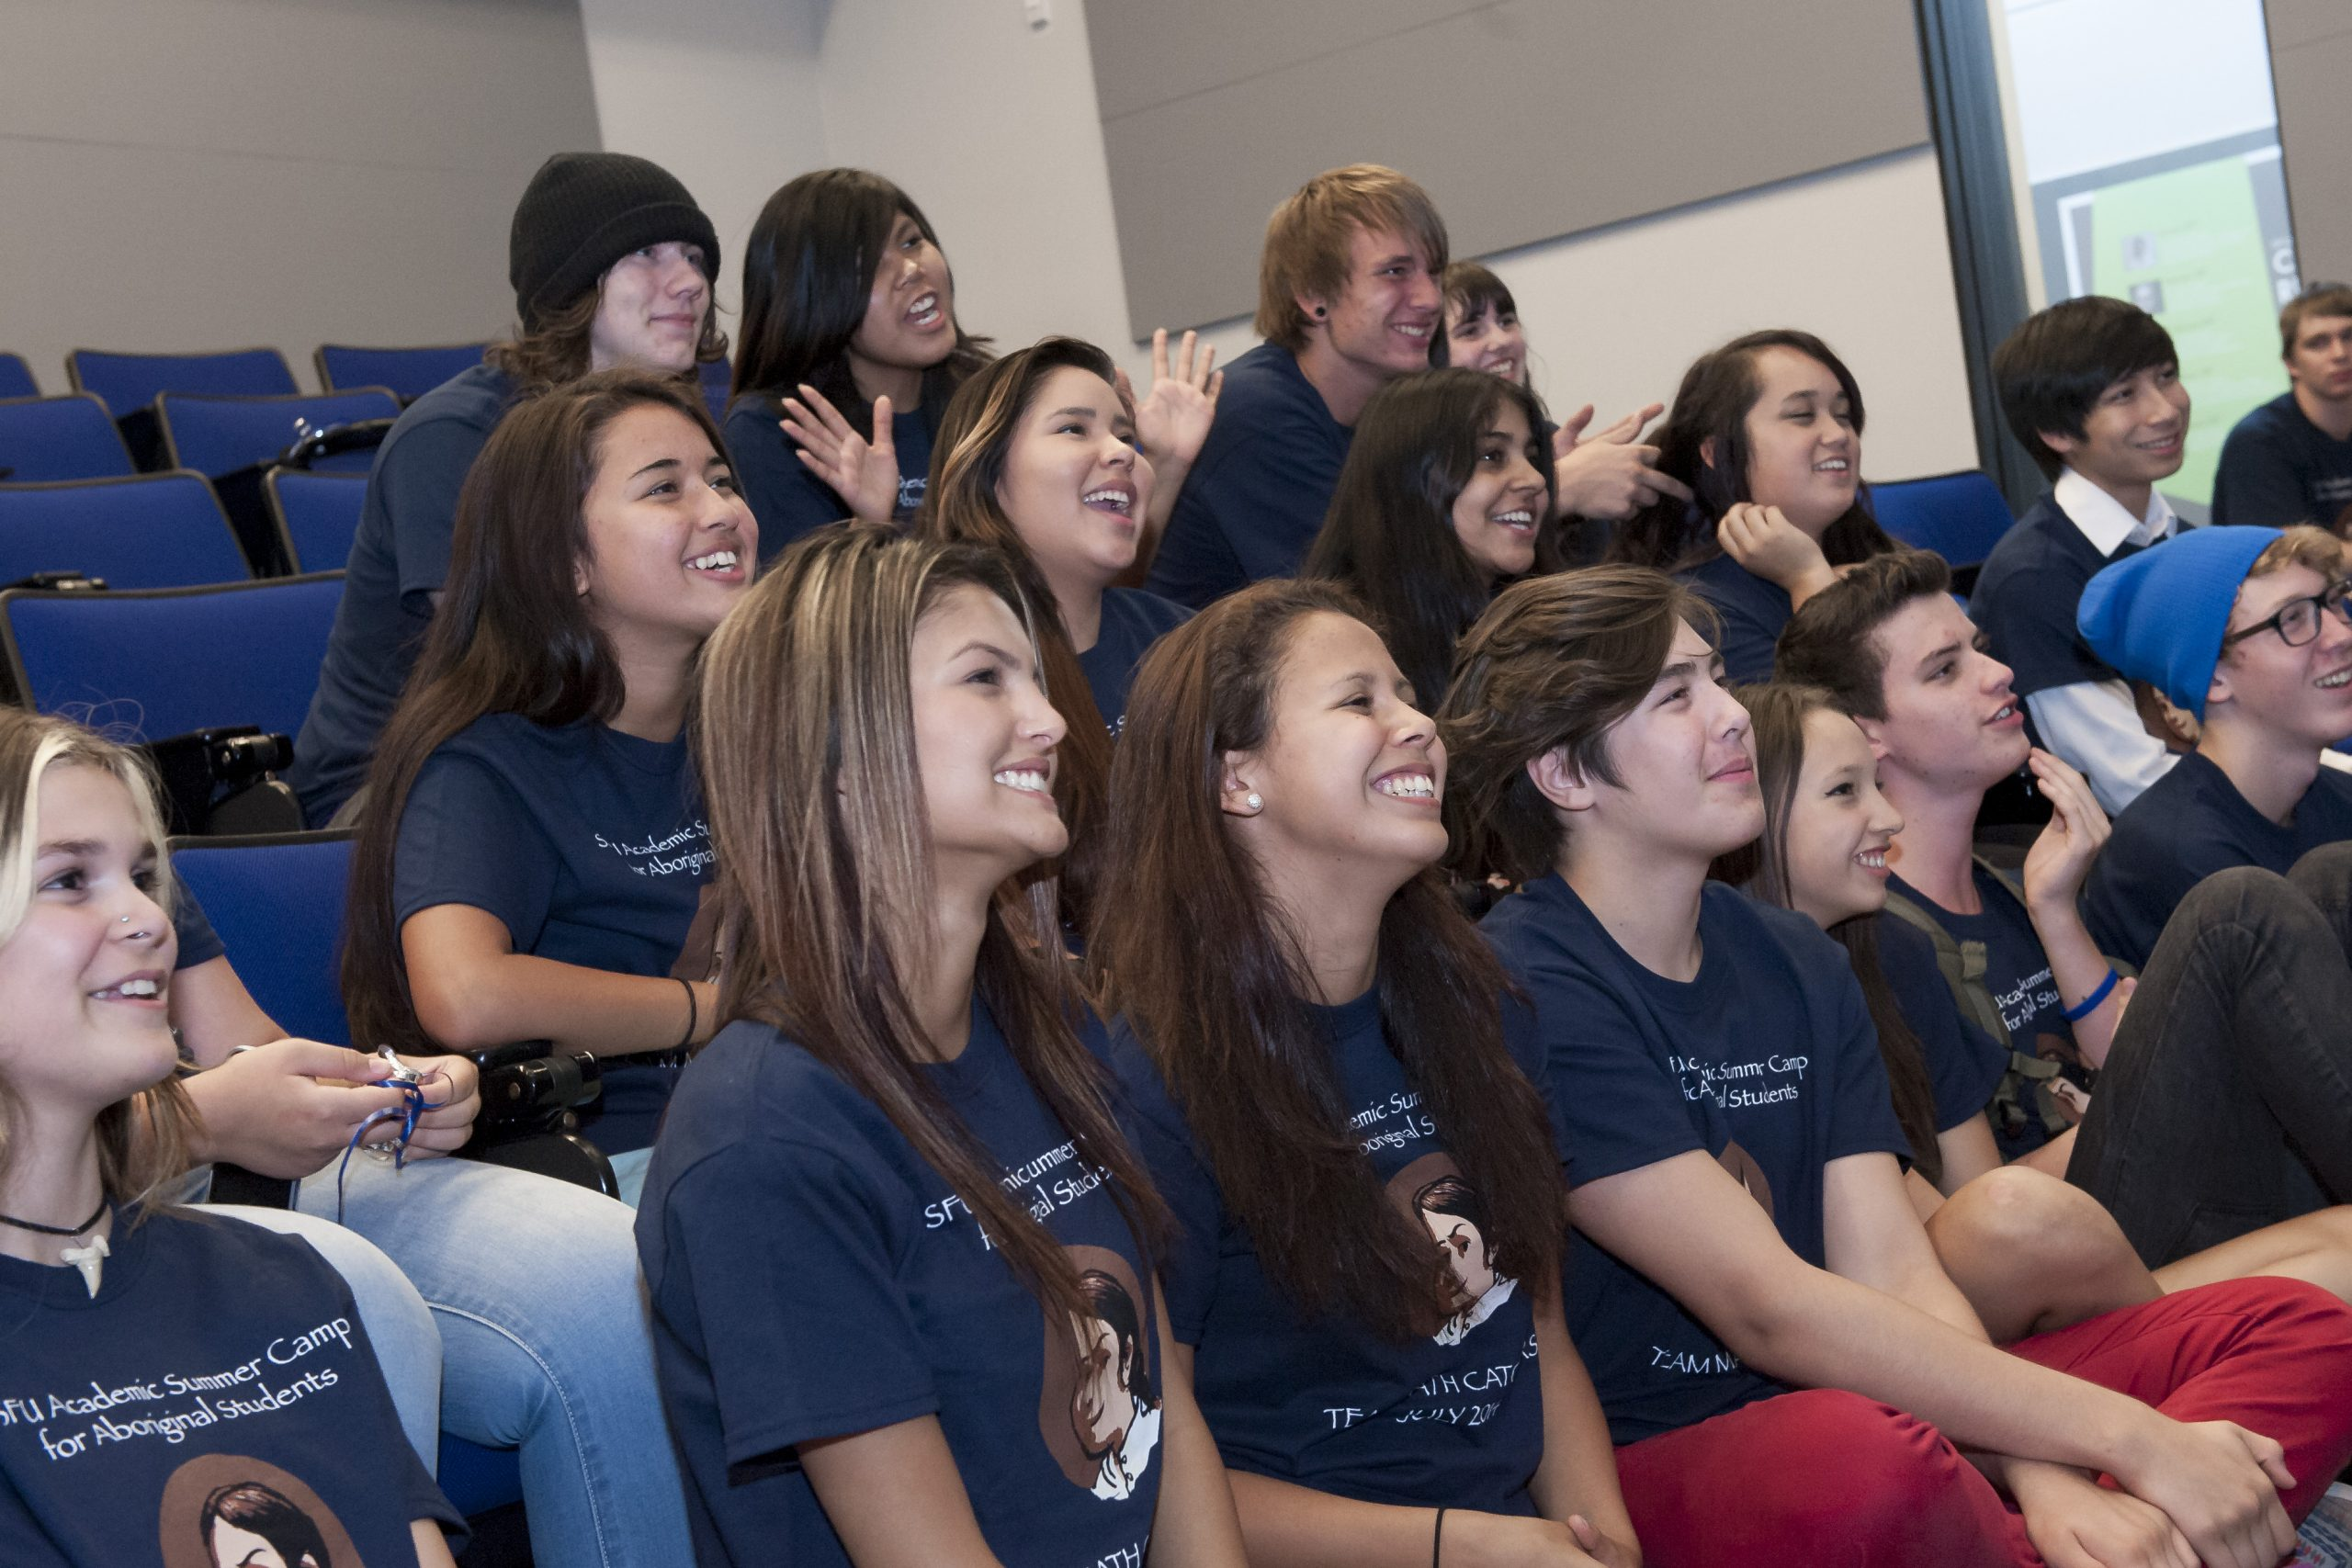 Grade 11 and 12 Indigenous students from First Nations communities and schools in the annual Aboriginal Students in Math and Science Workshop, 2014. Credits to: Simon Fraser University